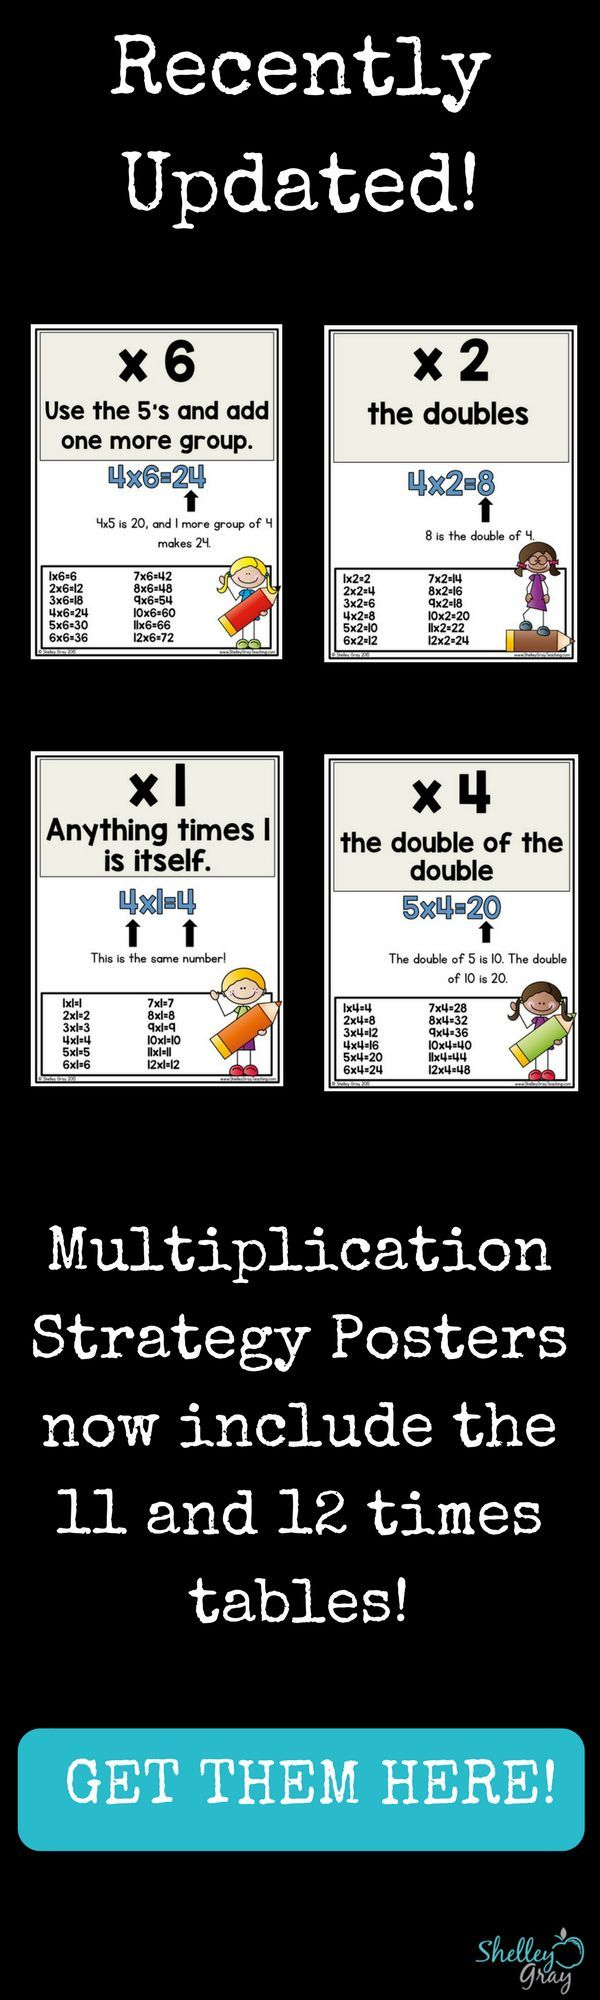 """Multiplication facts are so important. When students do not know their multiplication facts, it makes many skills more difficult as they progress to higher grade levels (long division, area, etc.)   I believe in teaching STRATEGY when it comes to multiplication. Strategies are like """"tools"""" that students can use to solve an equation. When he sees an equation, he grabs the proper """"tool"""" from his """"toolbox"""" to ensure that he can solve the equation effectively and efficiently."""